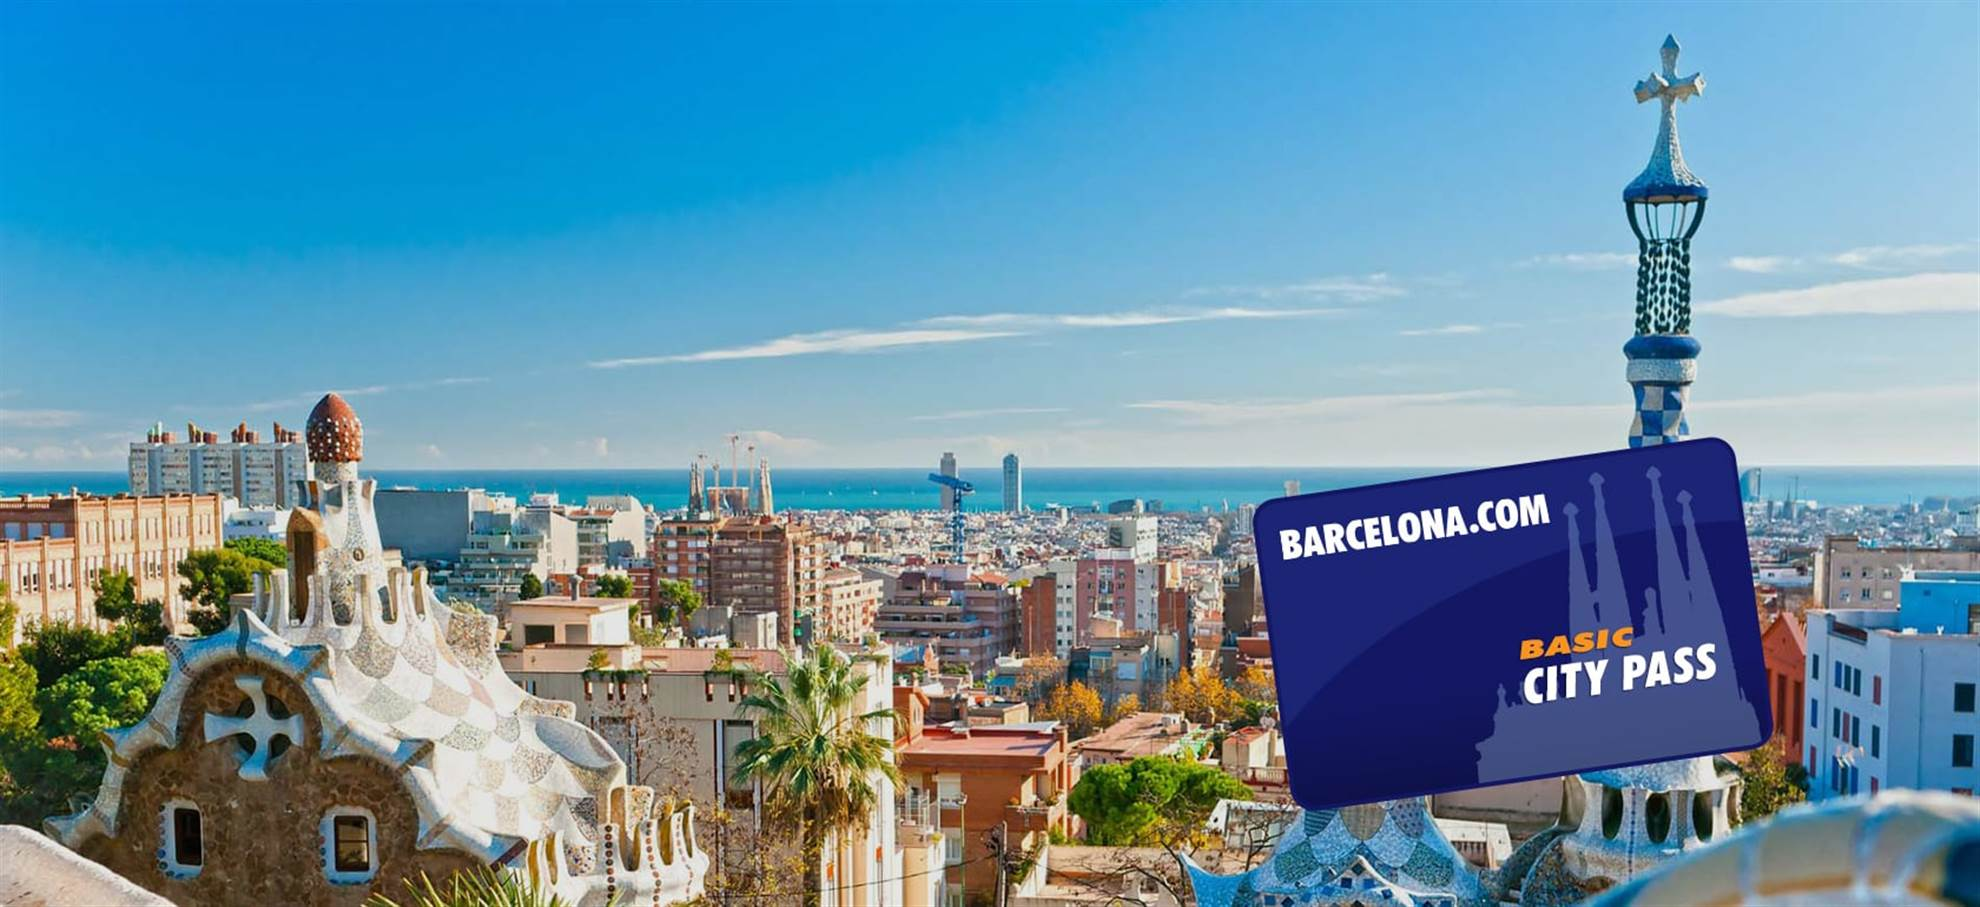 City Pass Barcelona - Basic